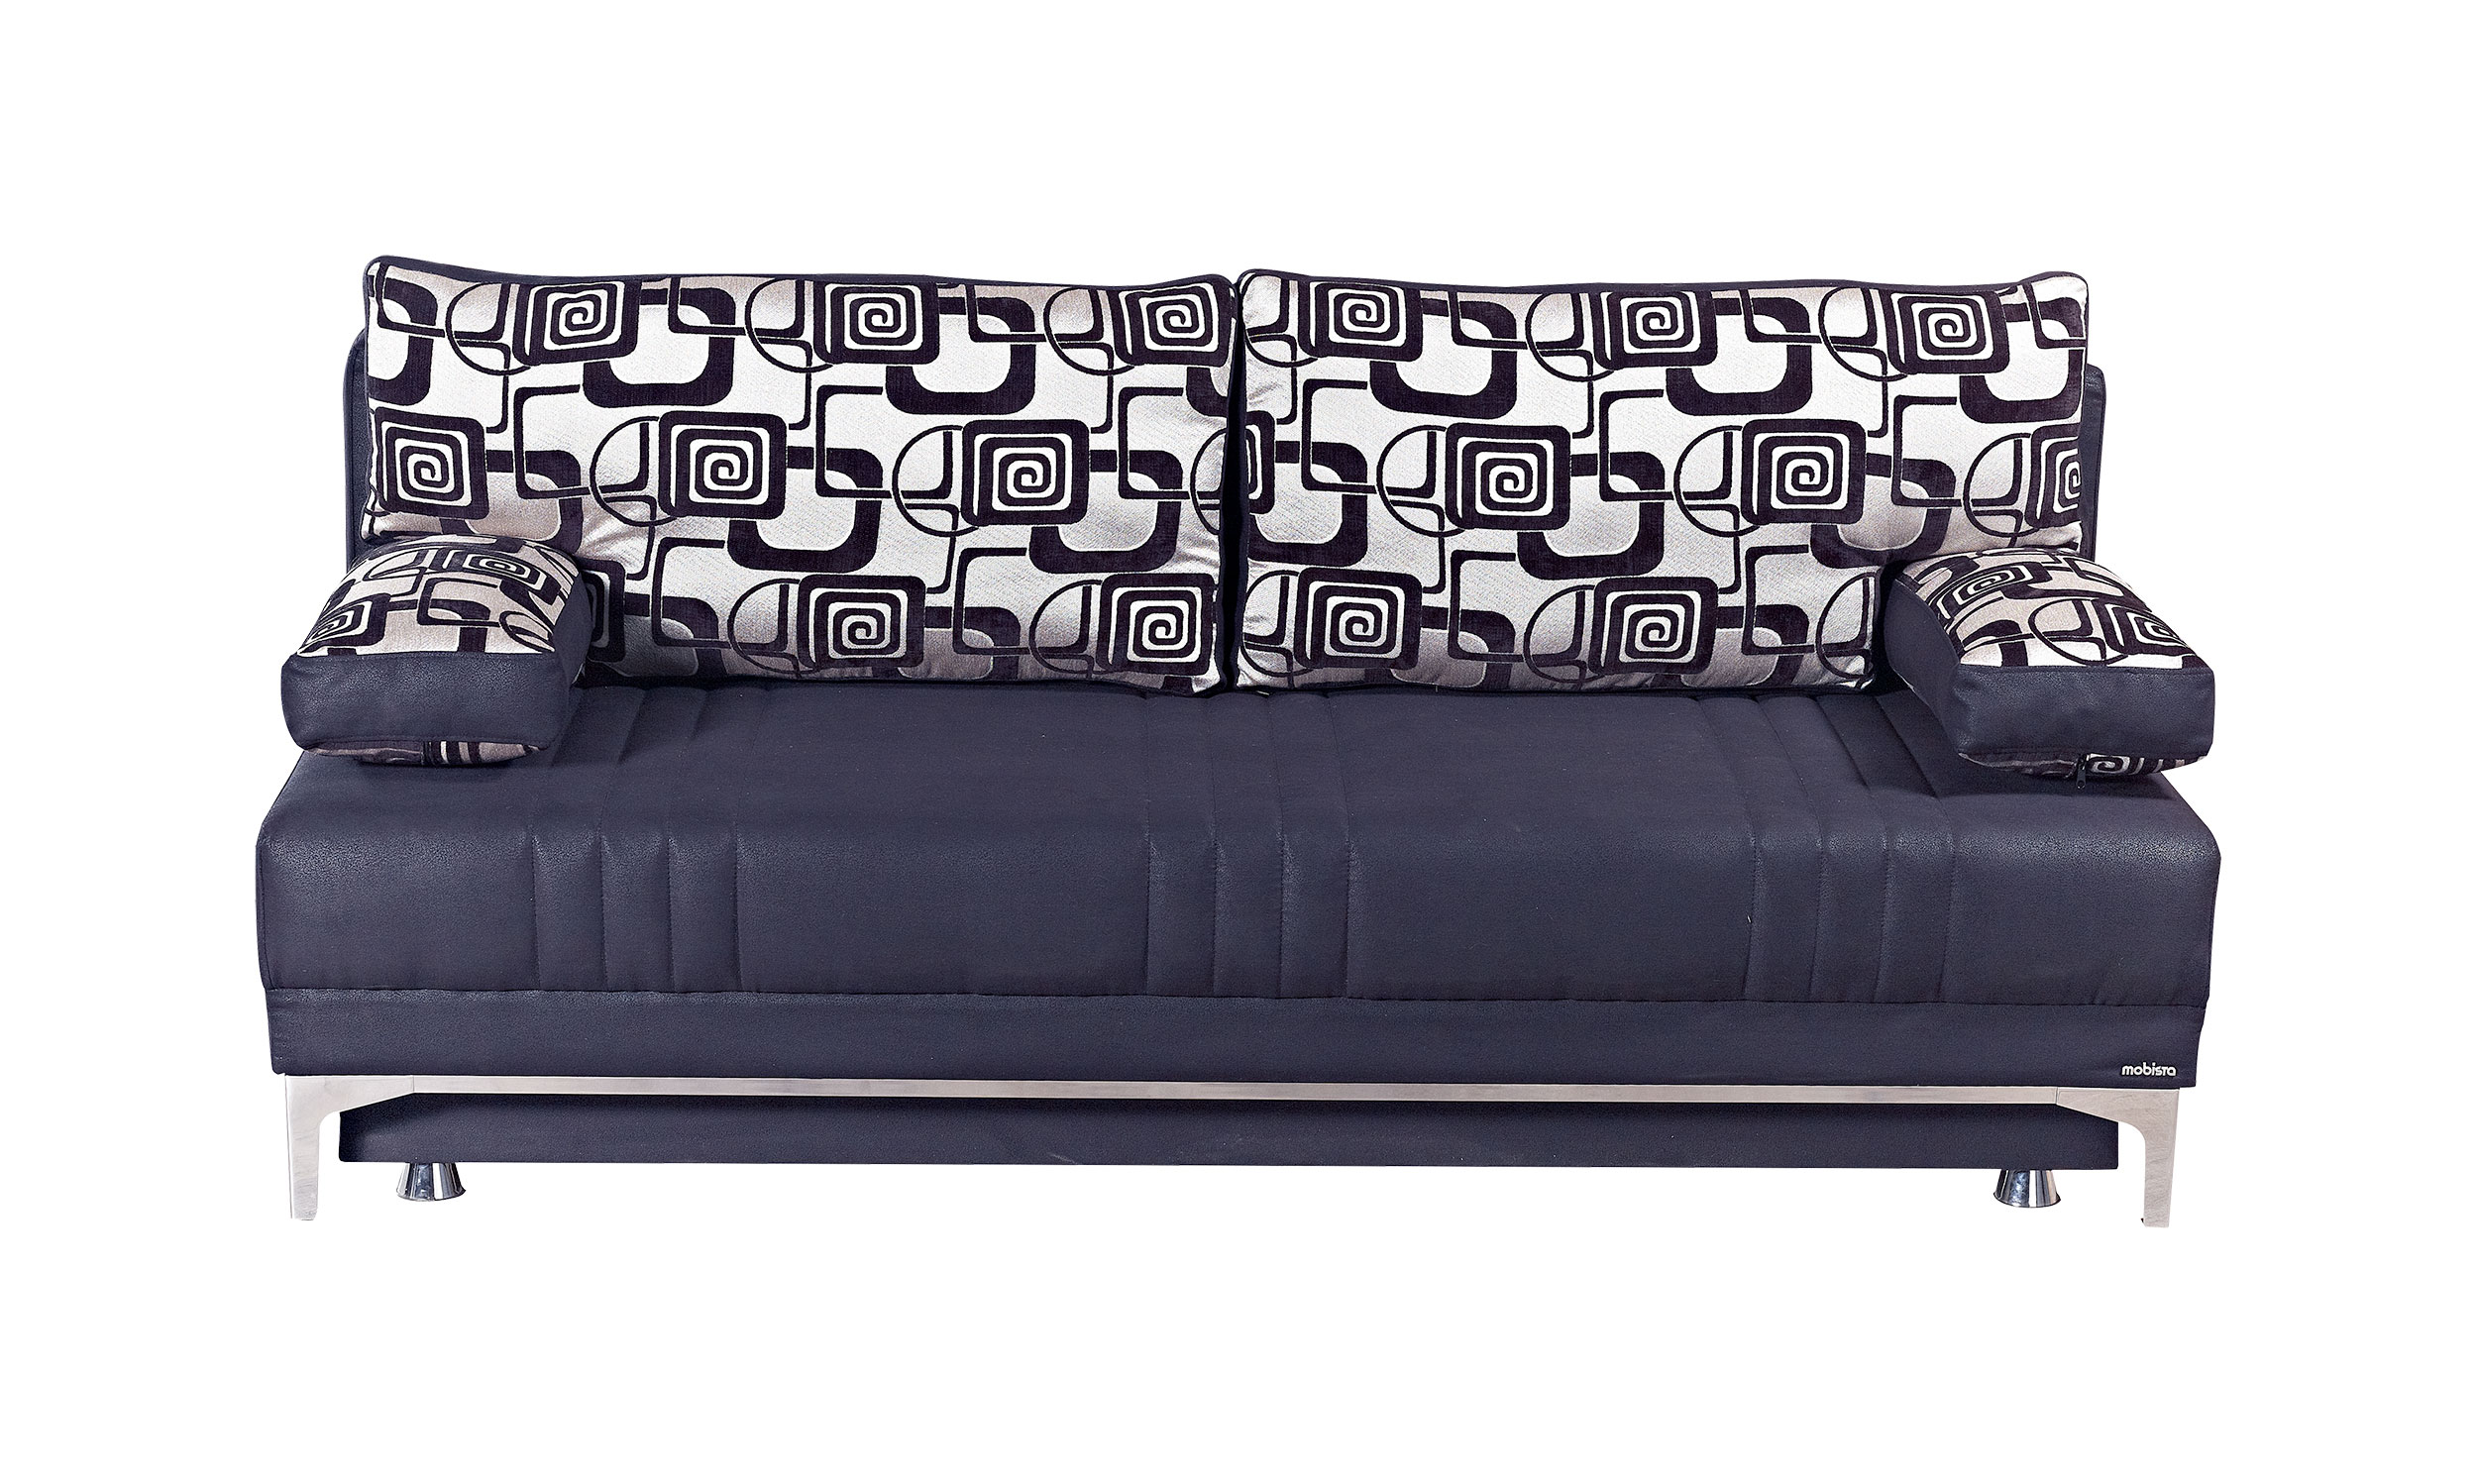 Europa Vintage Black Queen Size Sofa Bed by Mobista : EUR BLK SF from www.functionalfurniturenyc.com size 2500 x 1498 jpeg 565kB